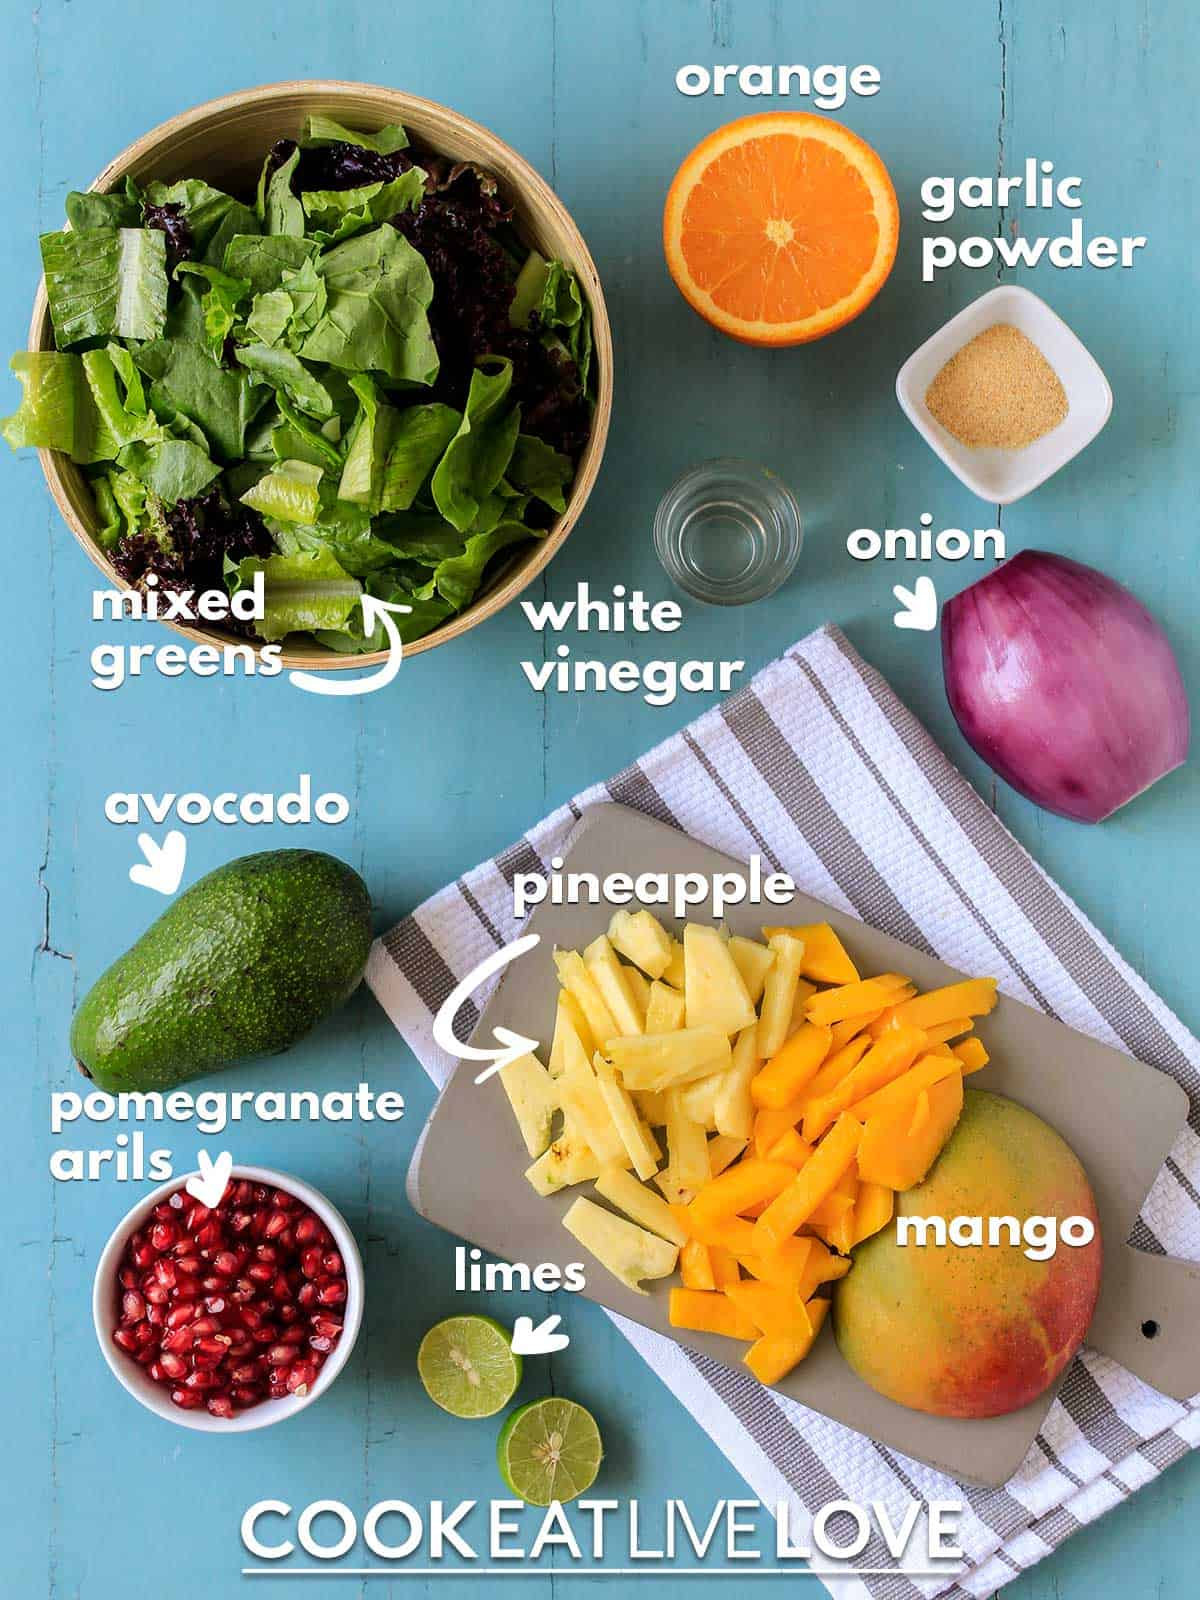 Ingredients to make mango avocado salad with text labels.